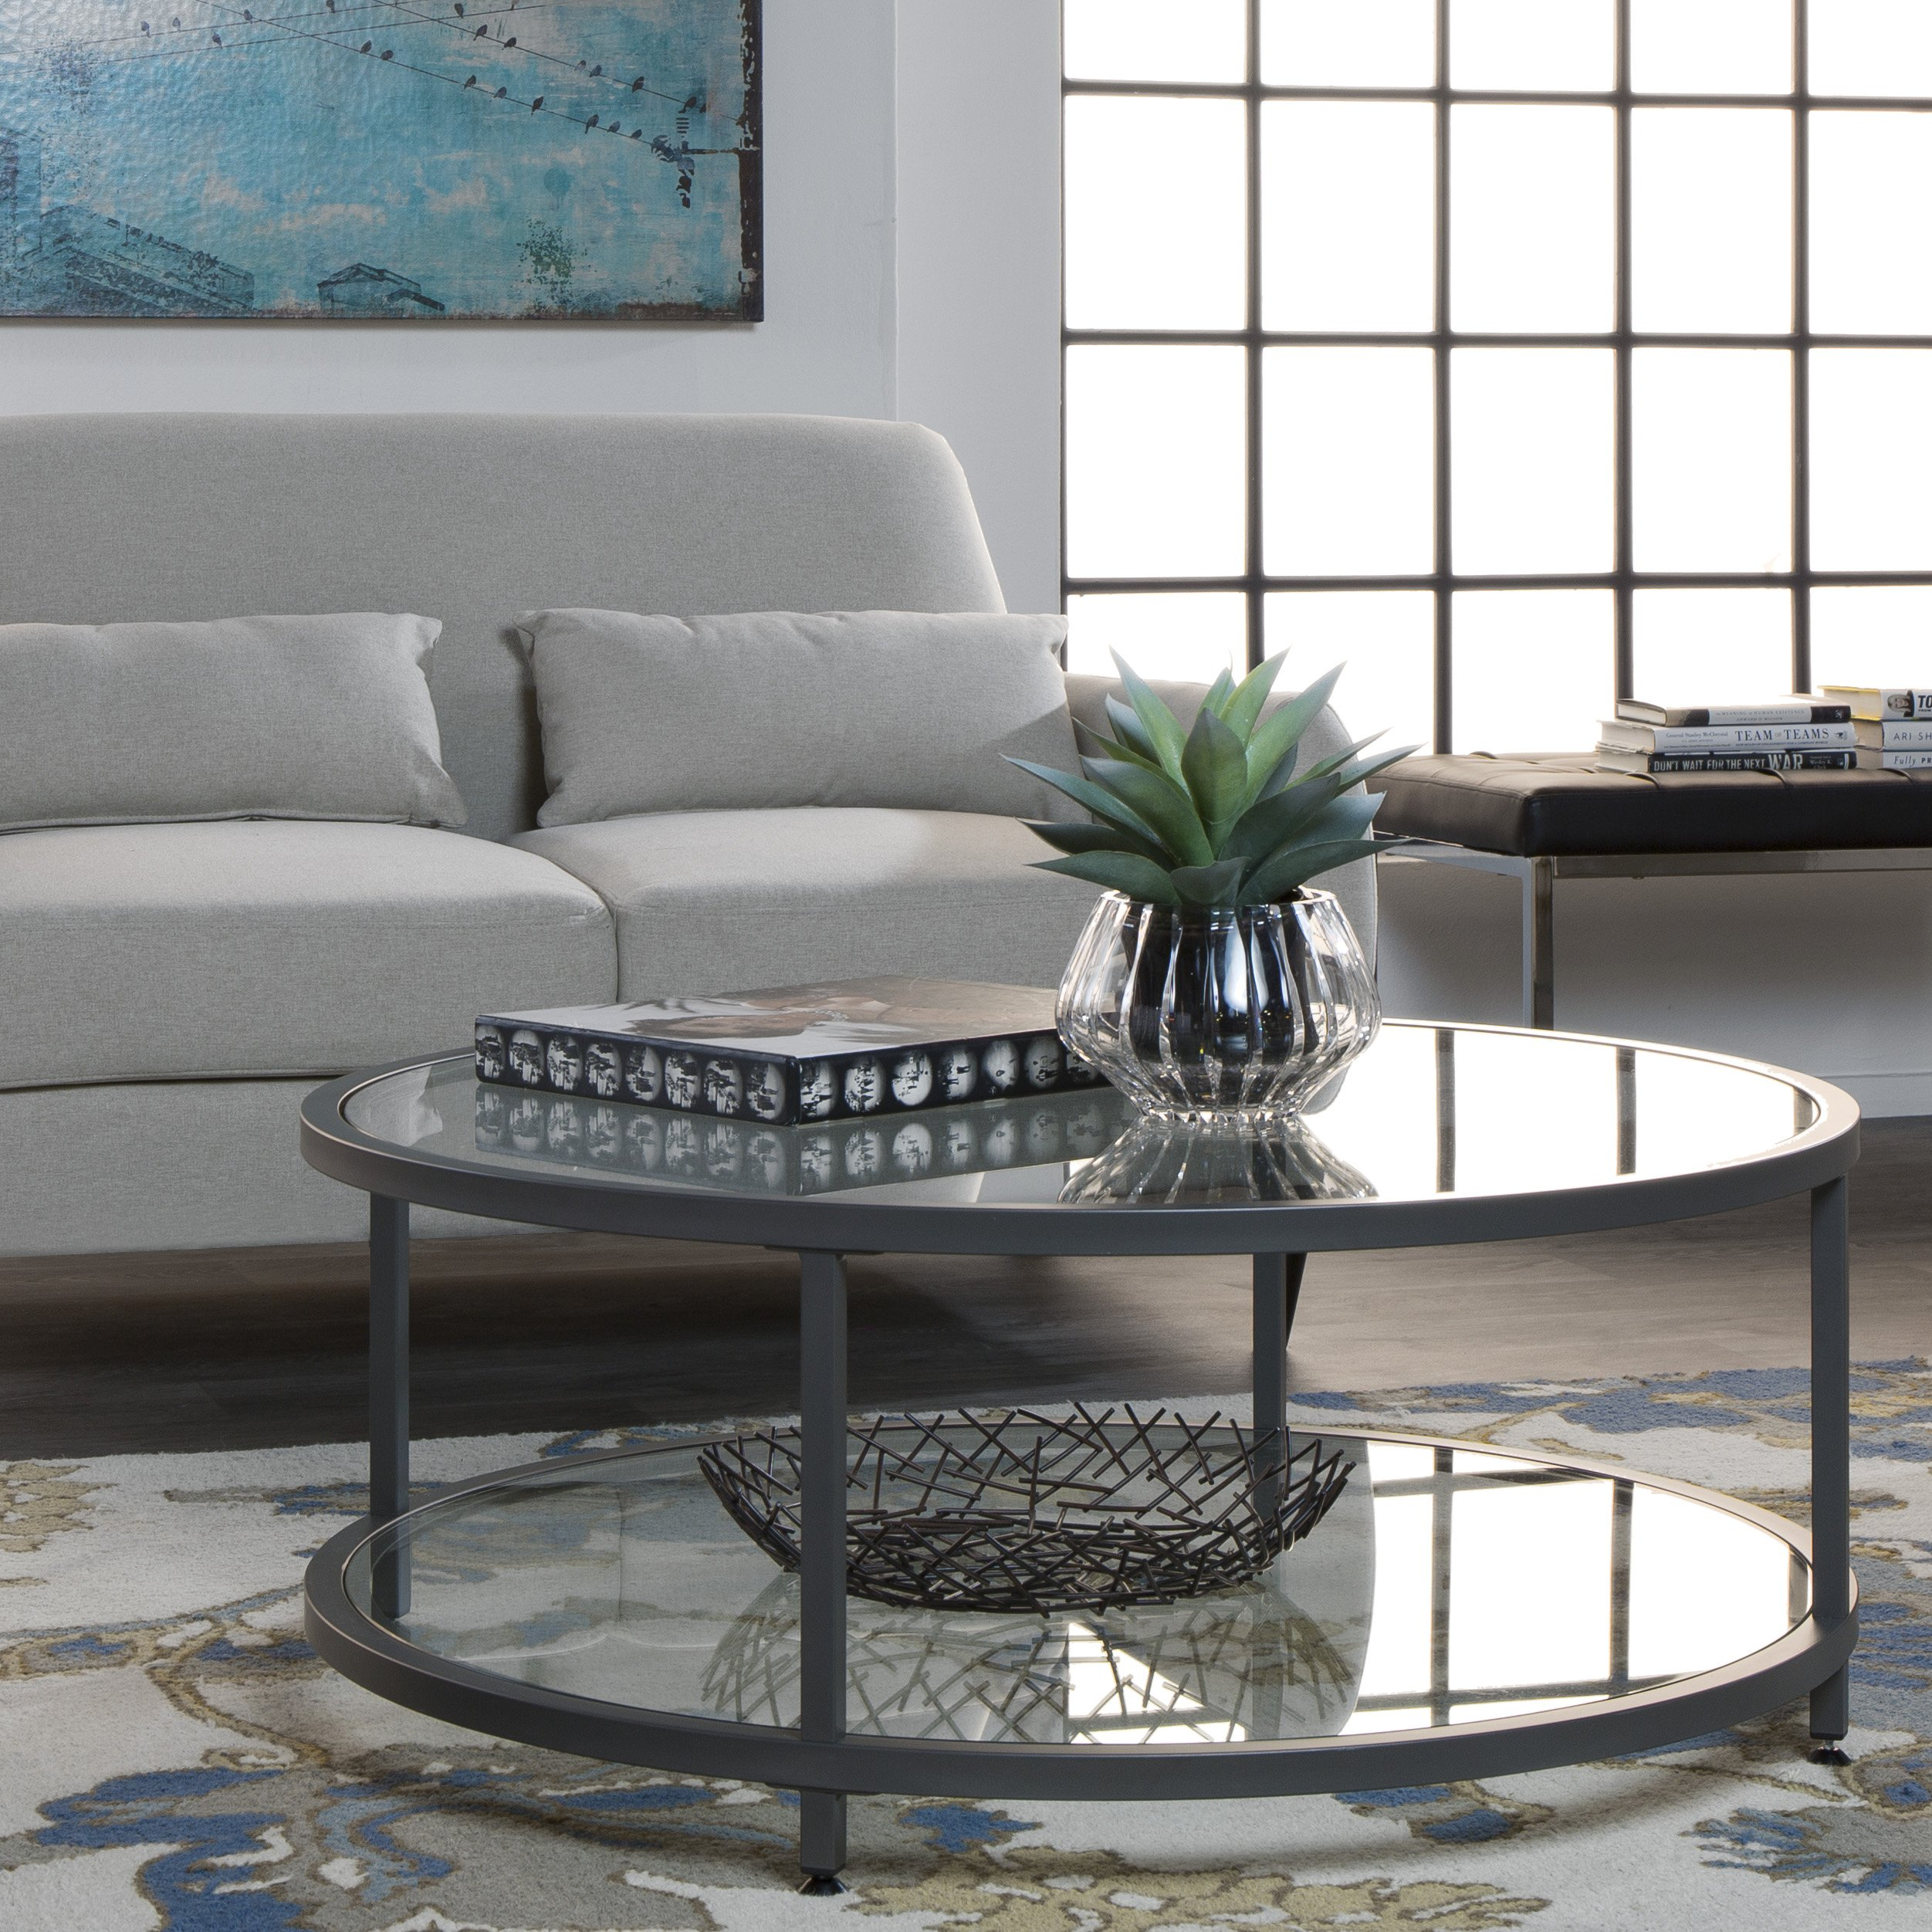 Studio Designs Home 71003.0 Camber Round Coffee Table In ...